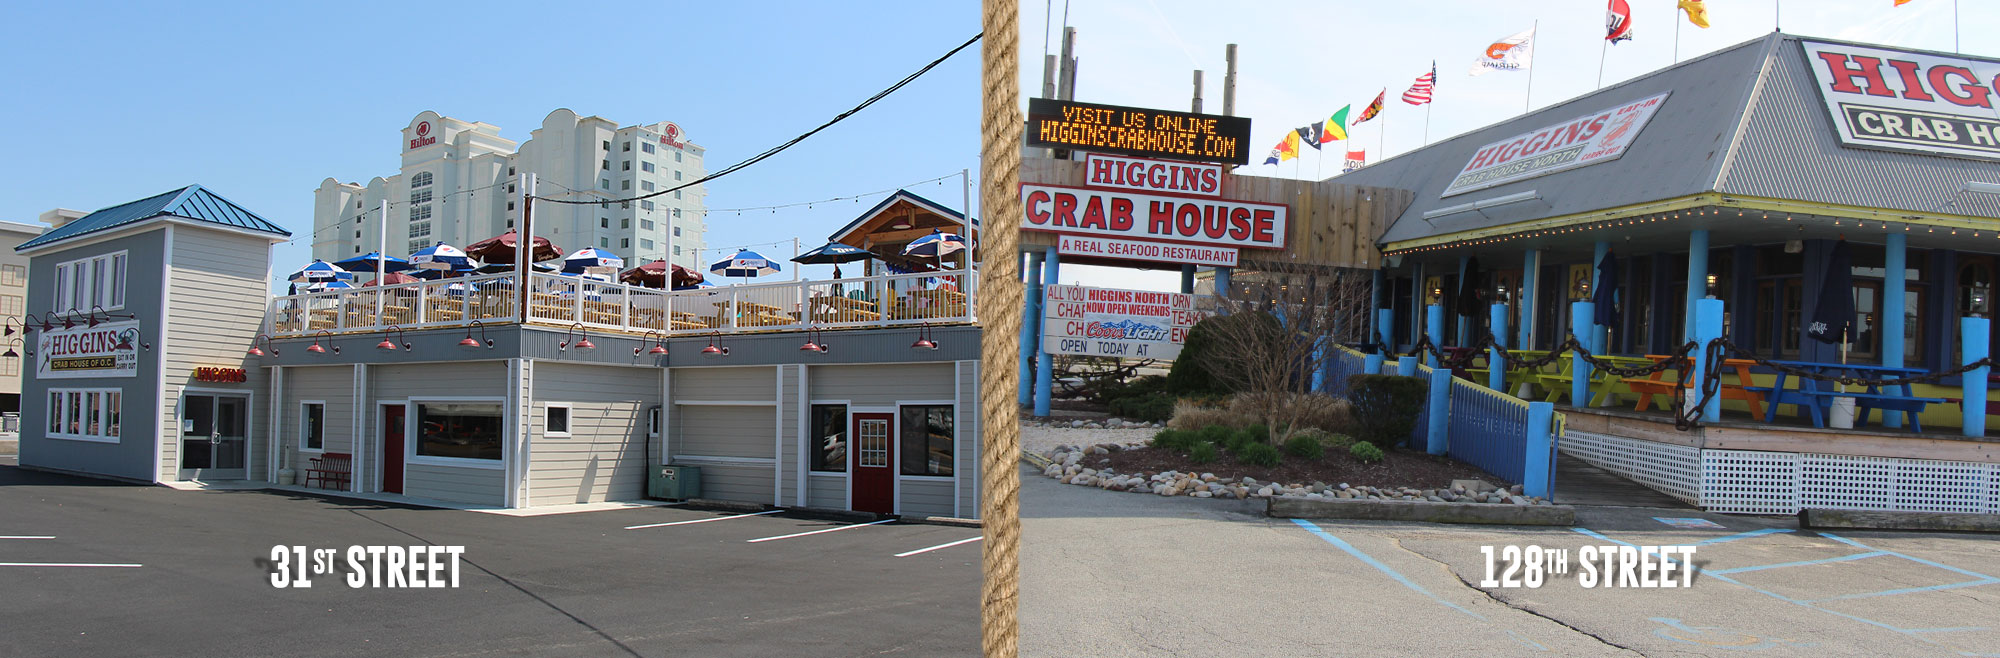 31st street and 128th street for higgins crab house ocean city md